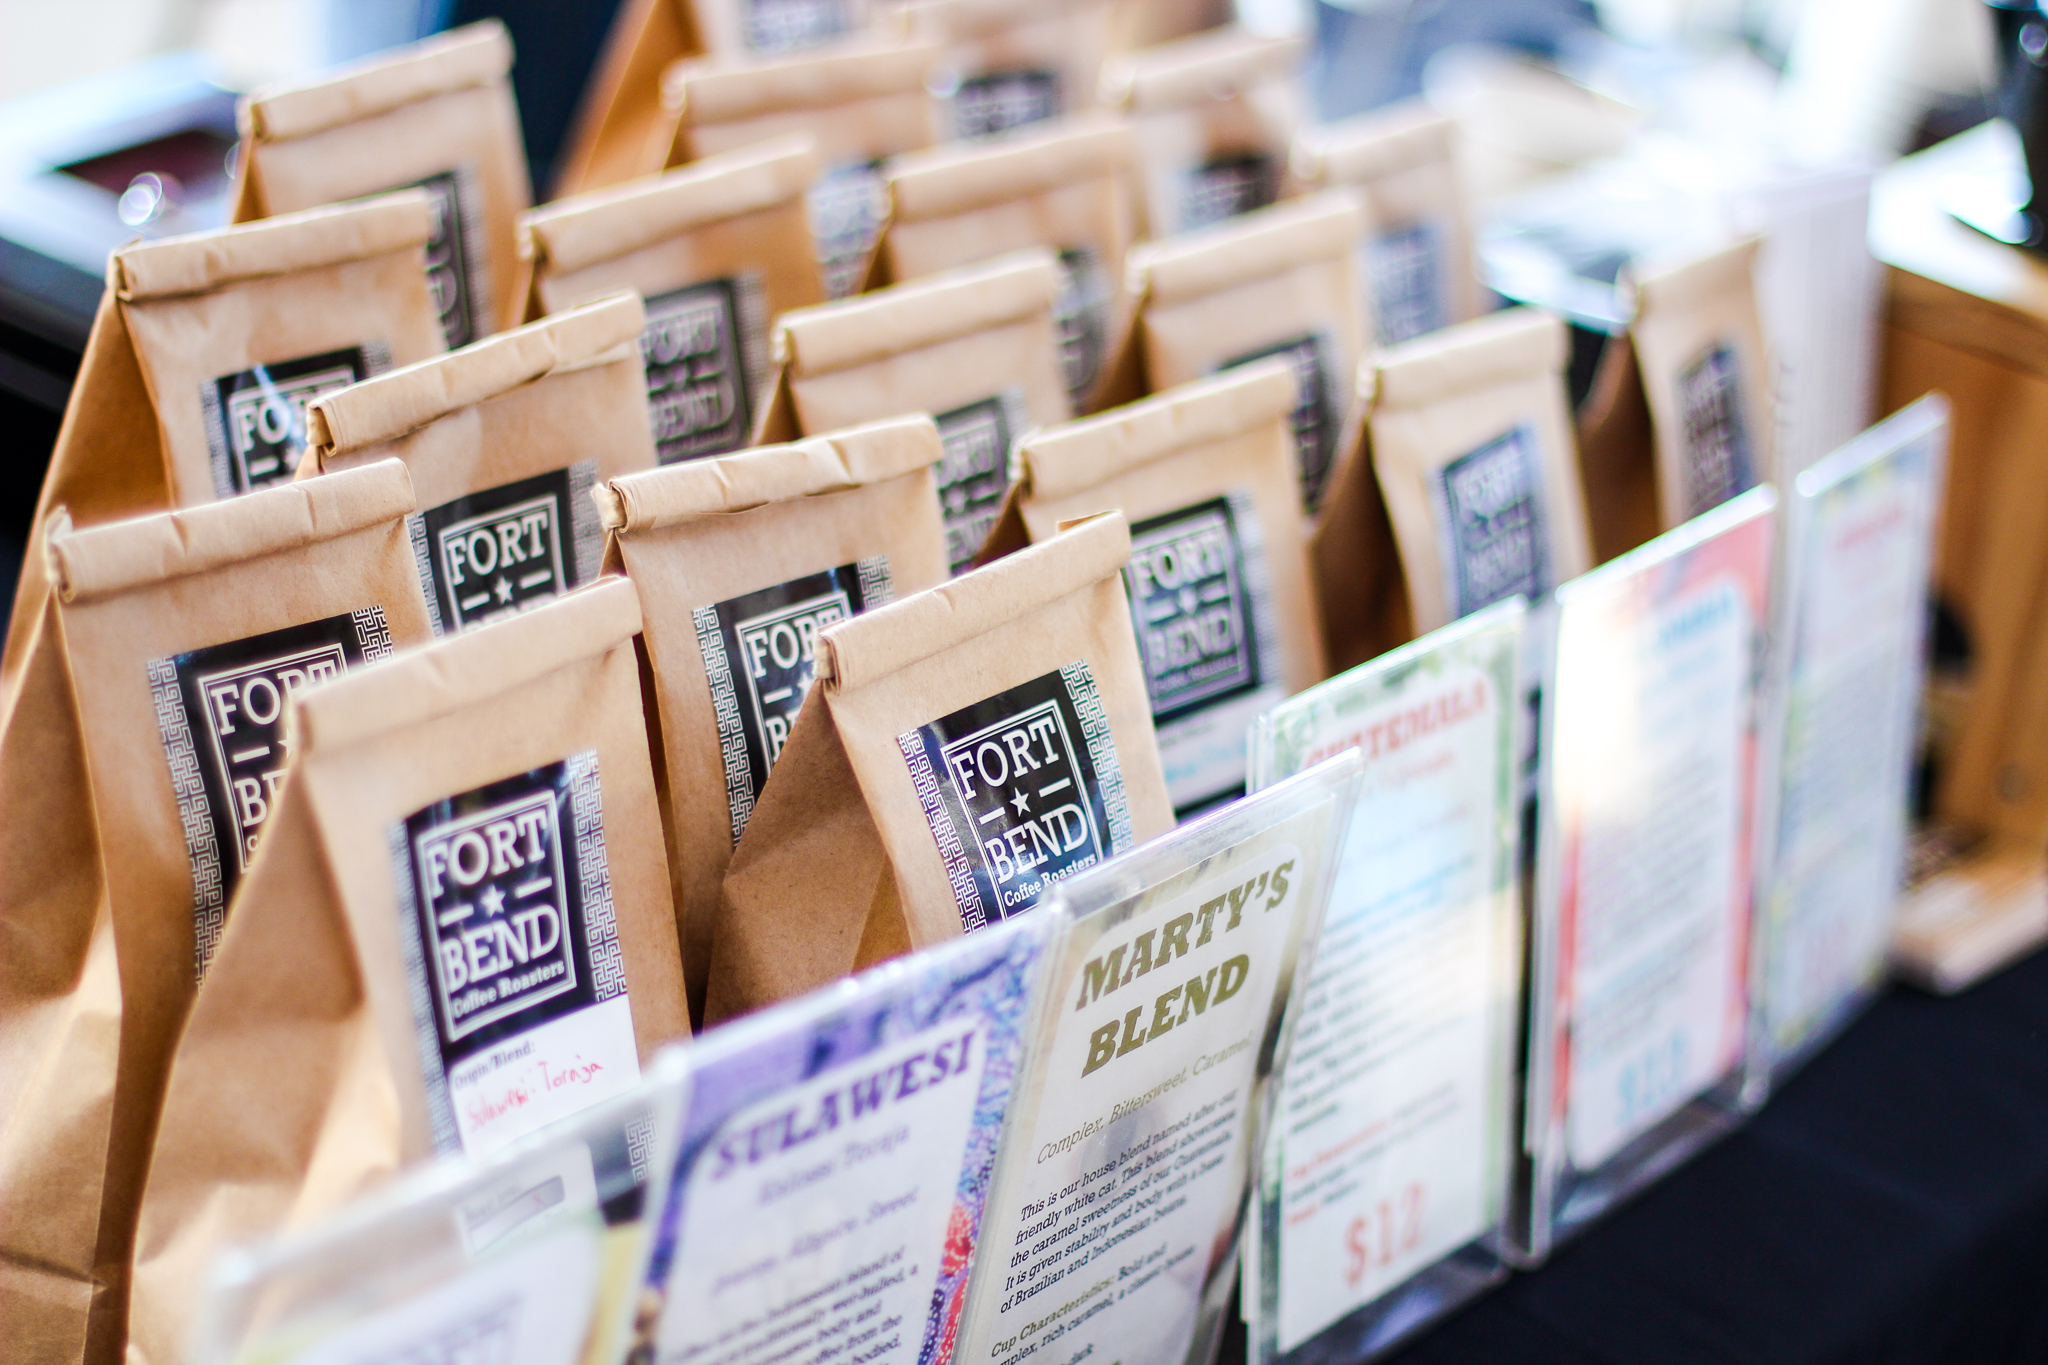 We offer a wide selection of freshly roasted coffee every market.